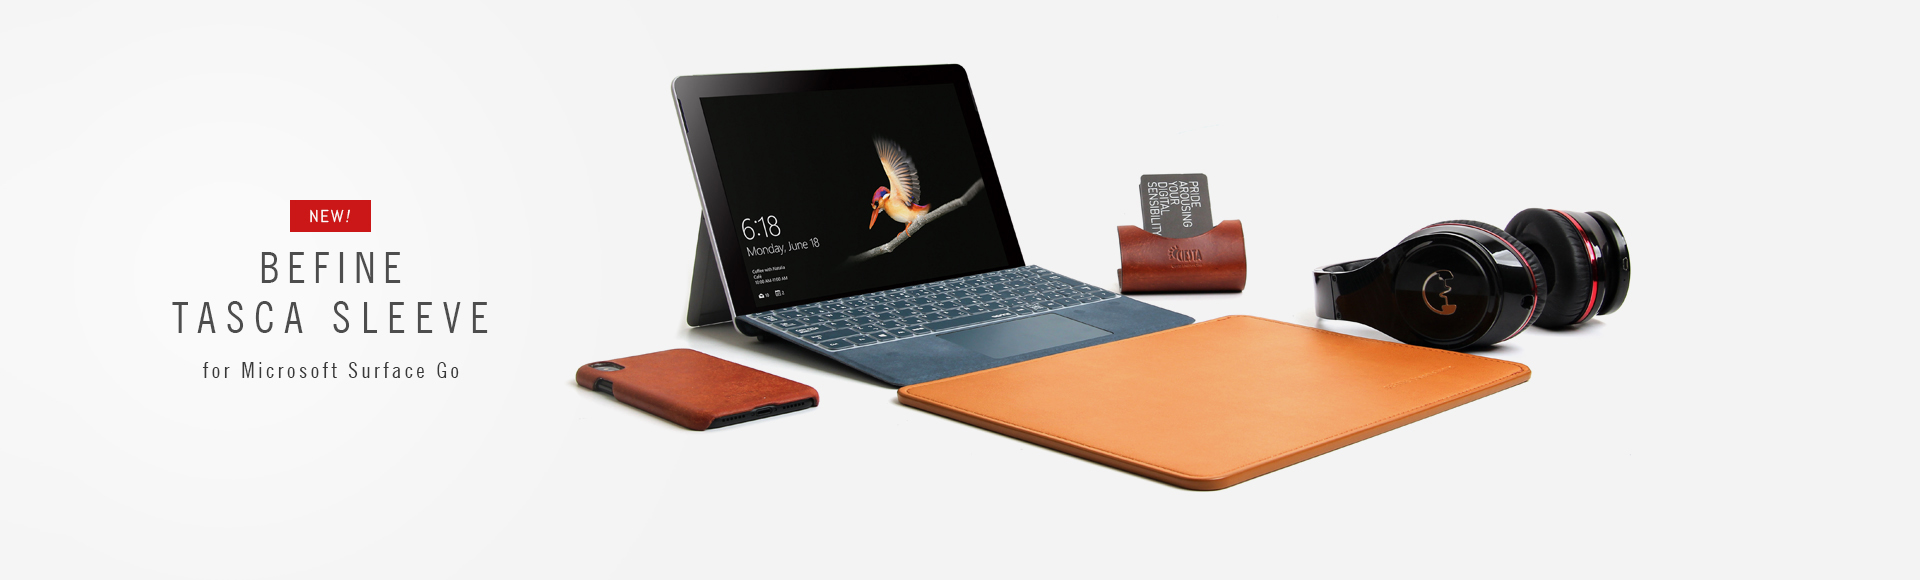 BEFINE Tasca Sleeve for Microsoft Surface Go